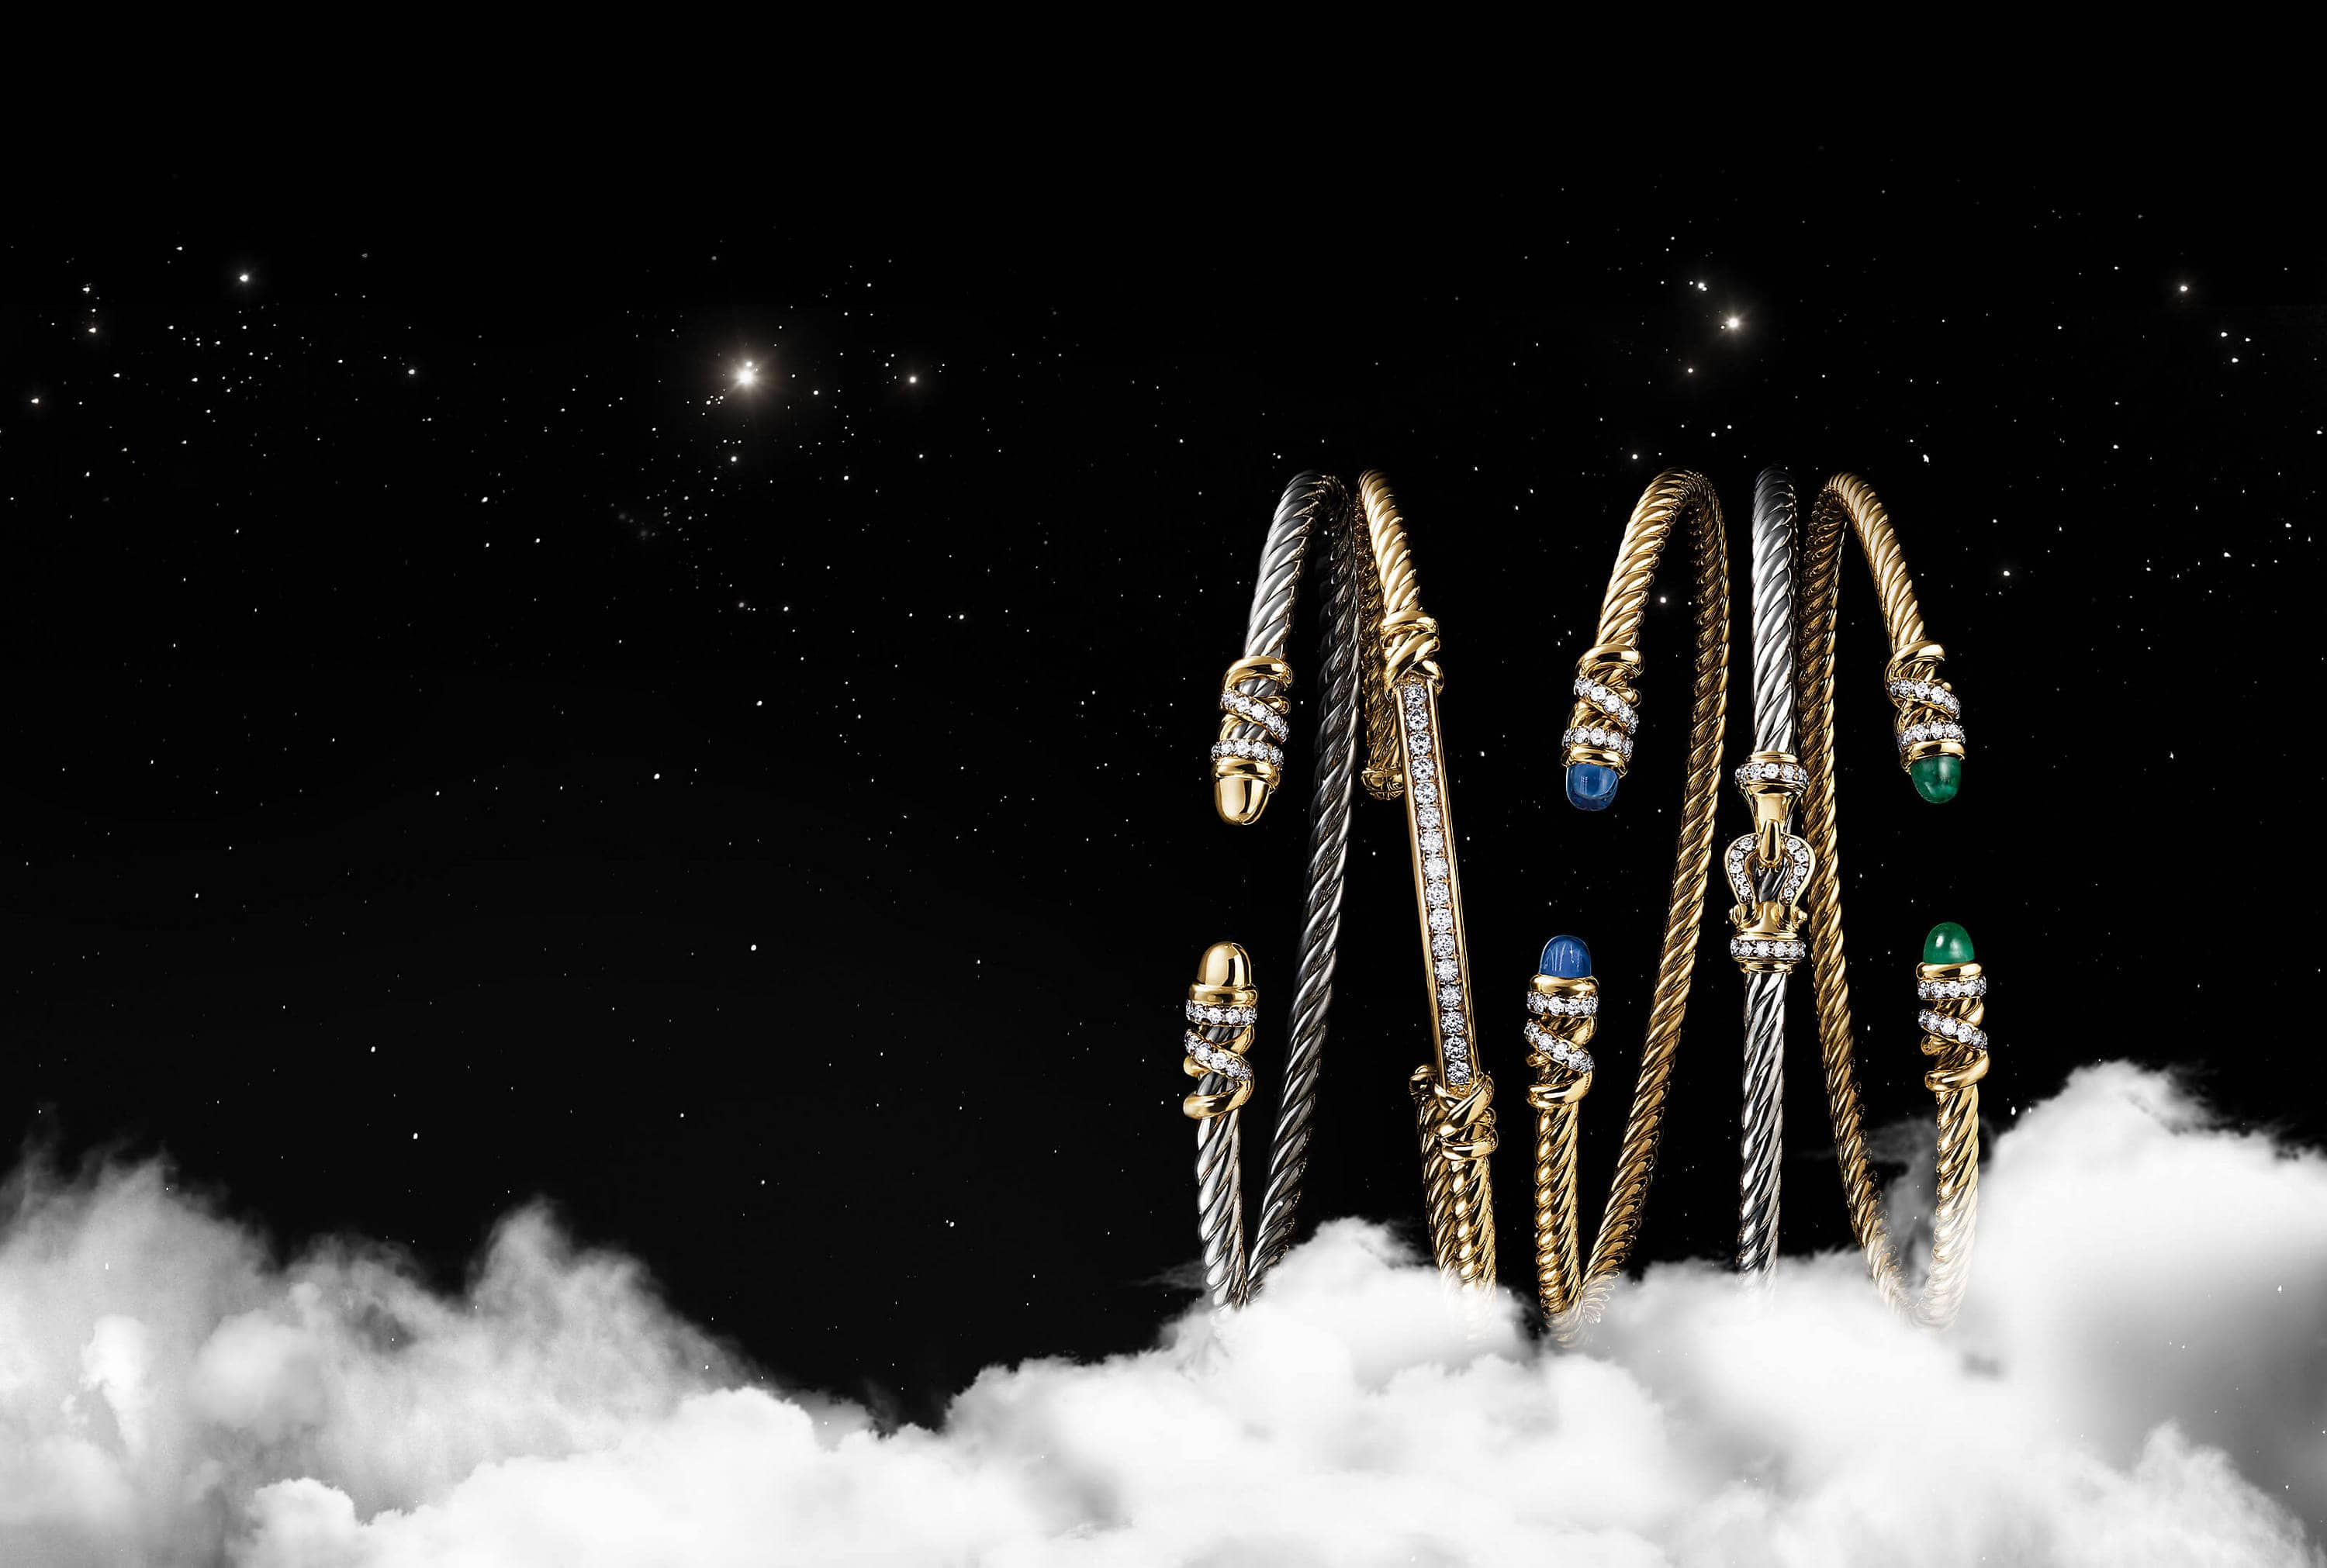 A color photo shows an overhead shot of a horizontal stack of five David Yurman bracelets from the Helena and Buckle collections floating in a starry night sky with white clouds. Three of the women's bracelets are crafted from 18K yellow gold with pavé diamond, emerald or tanzanite accents. Two of the women's bracelets are crafted from sterling silver with 18K yellow gold and pavé diamond accents.